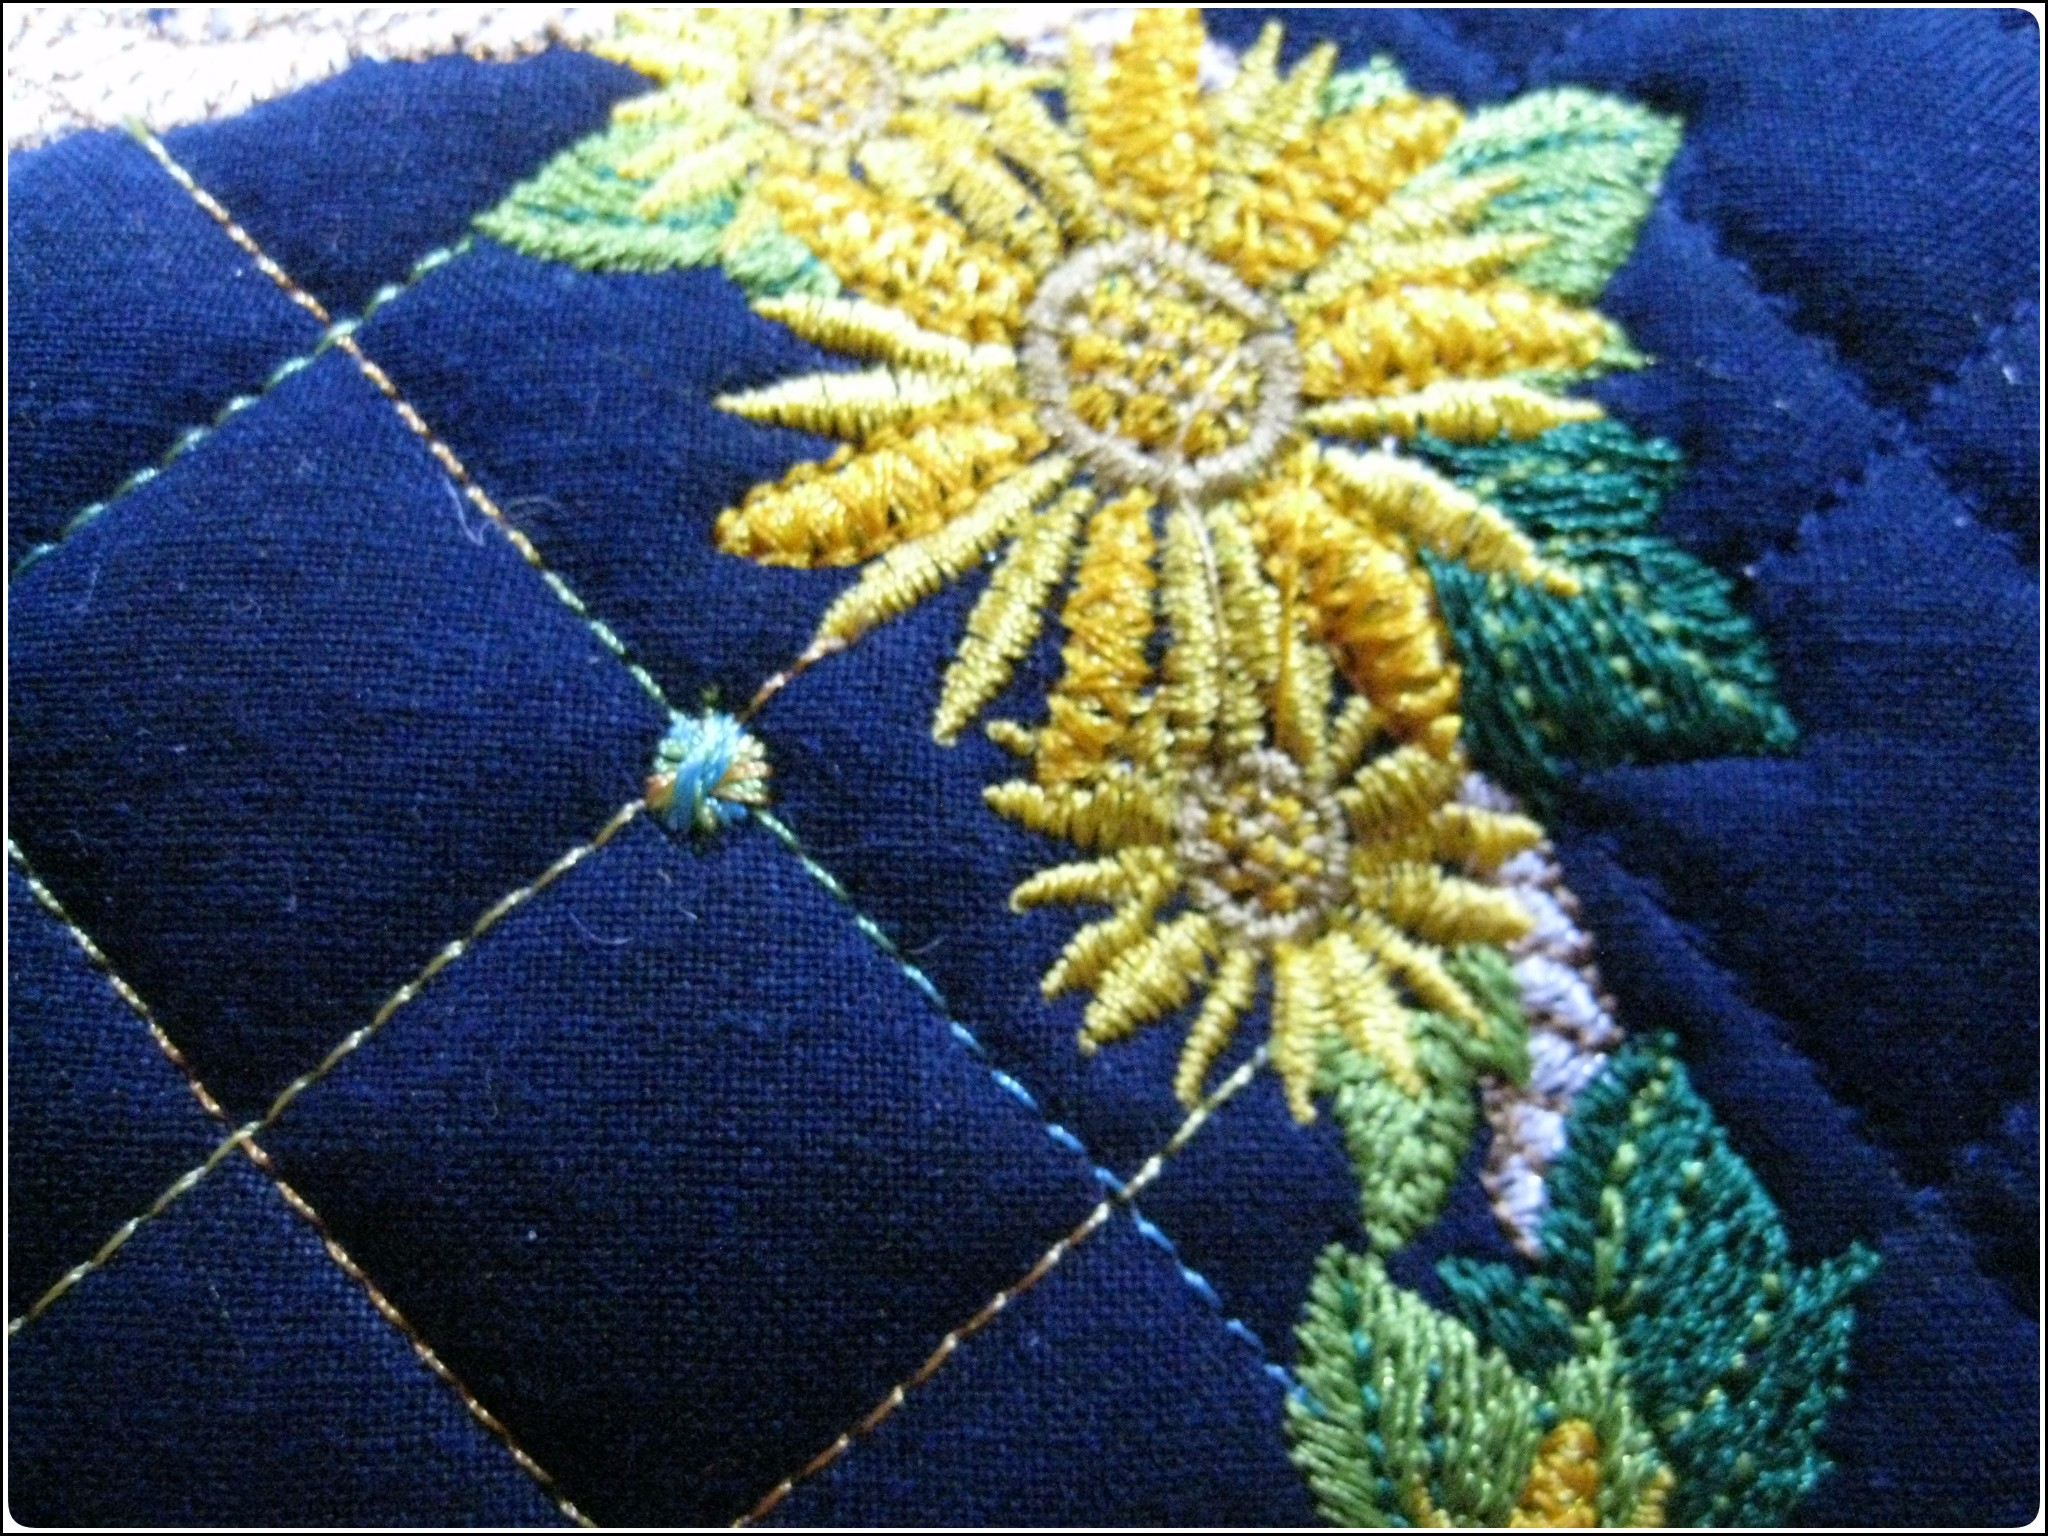 embroidery_10_621.jpg